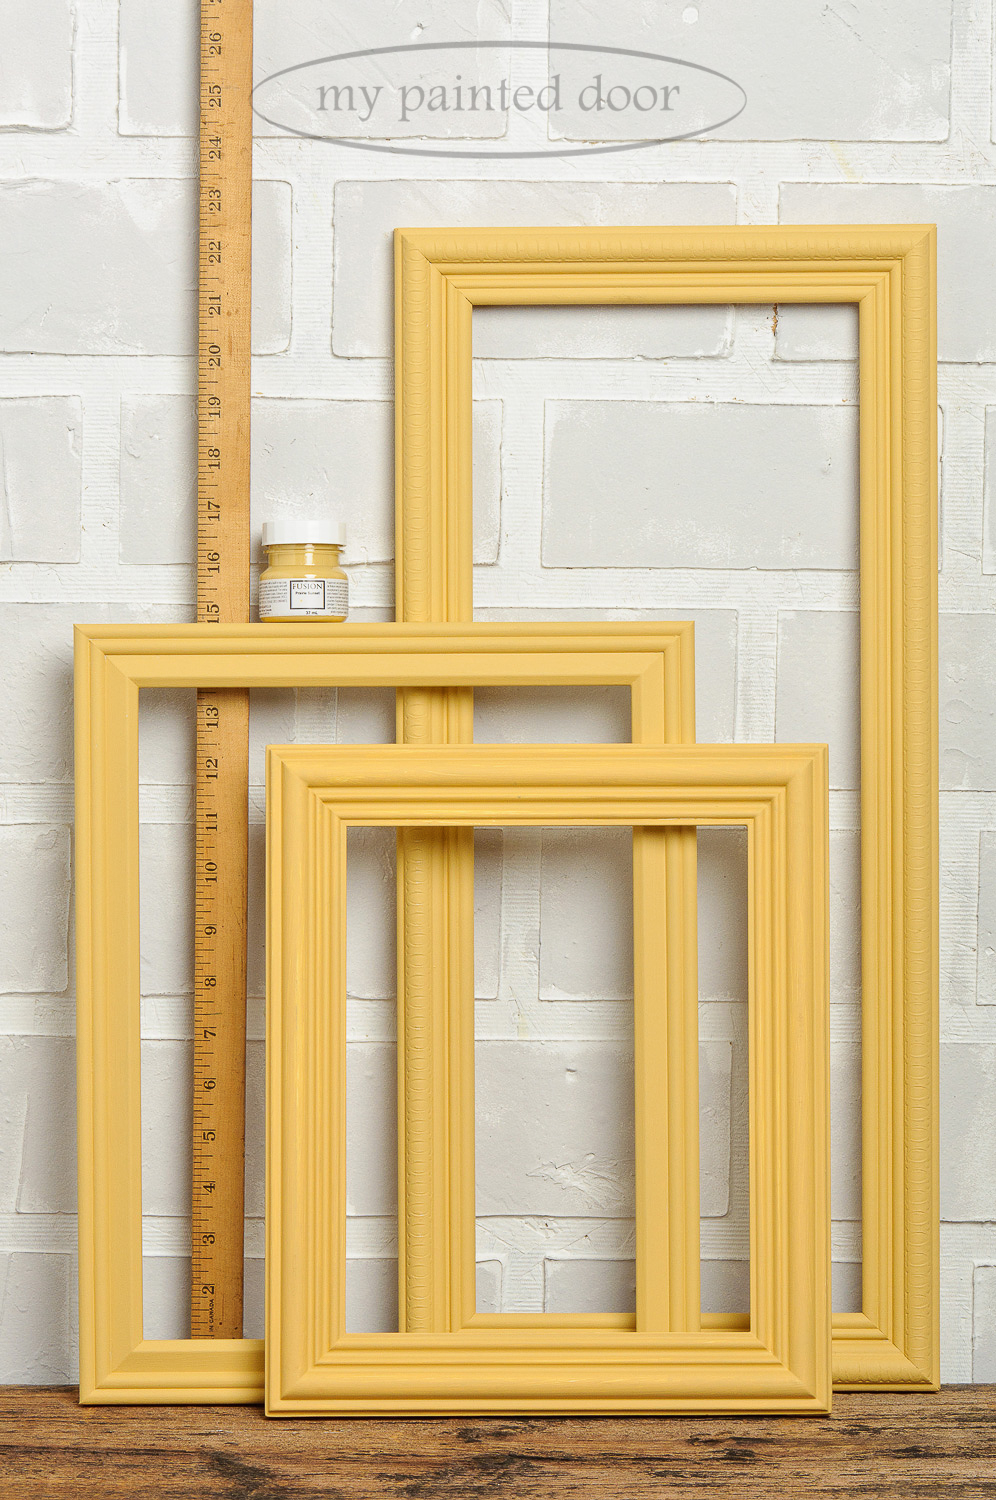 How far does one tester size bottle of Fusion Mineral Paint go? Frames are painted in Prairie Sunset.